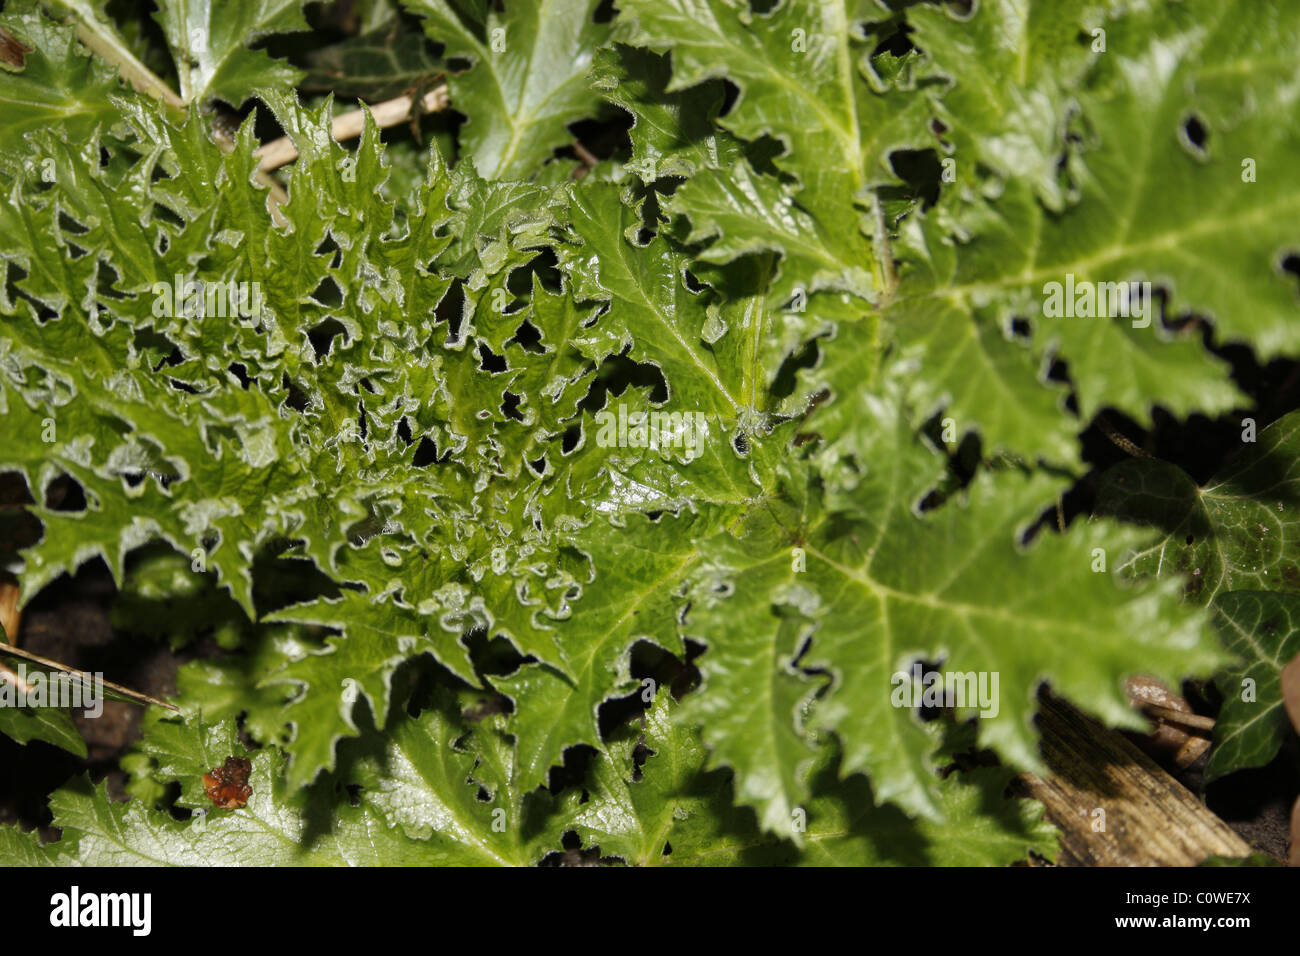 close up of green carduus thistle leaves - Stock Image